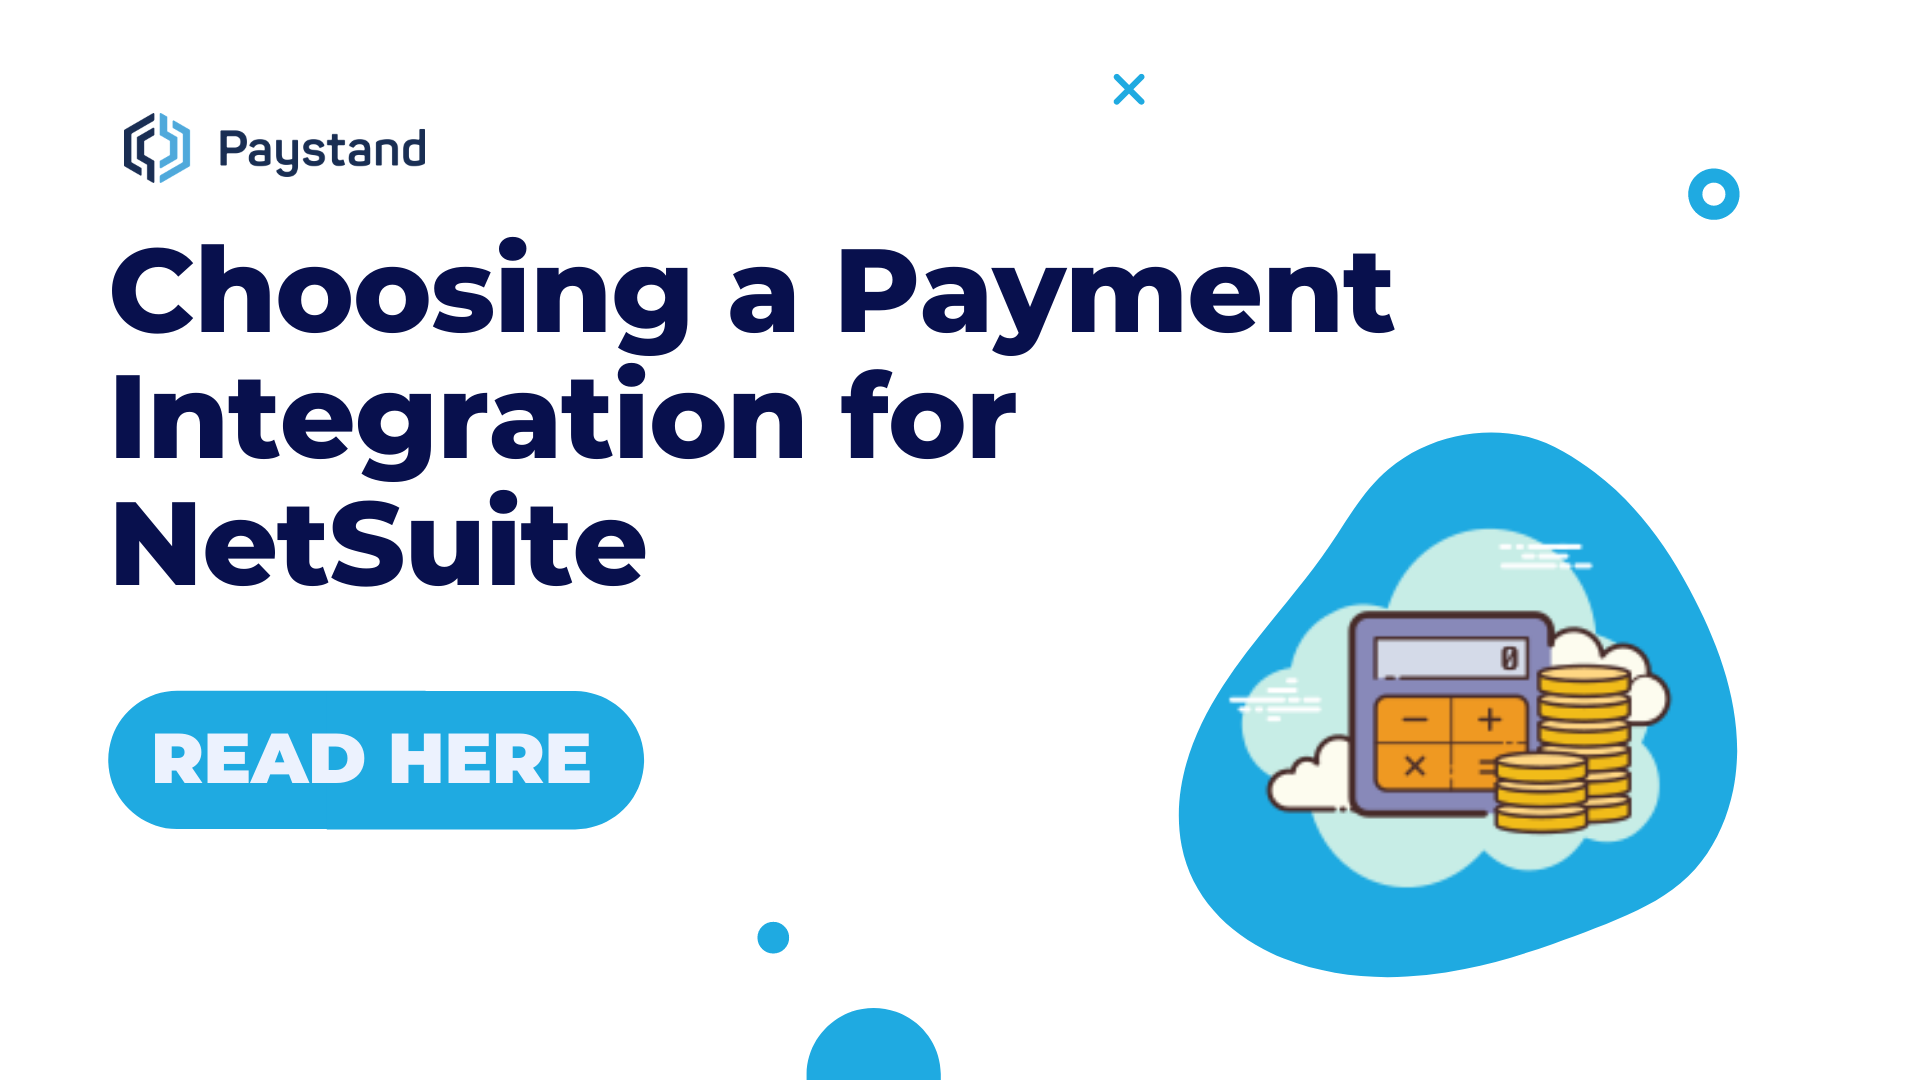 Choosing a Payment Integration for NetSuite 2